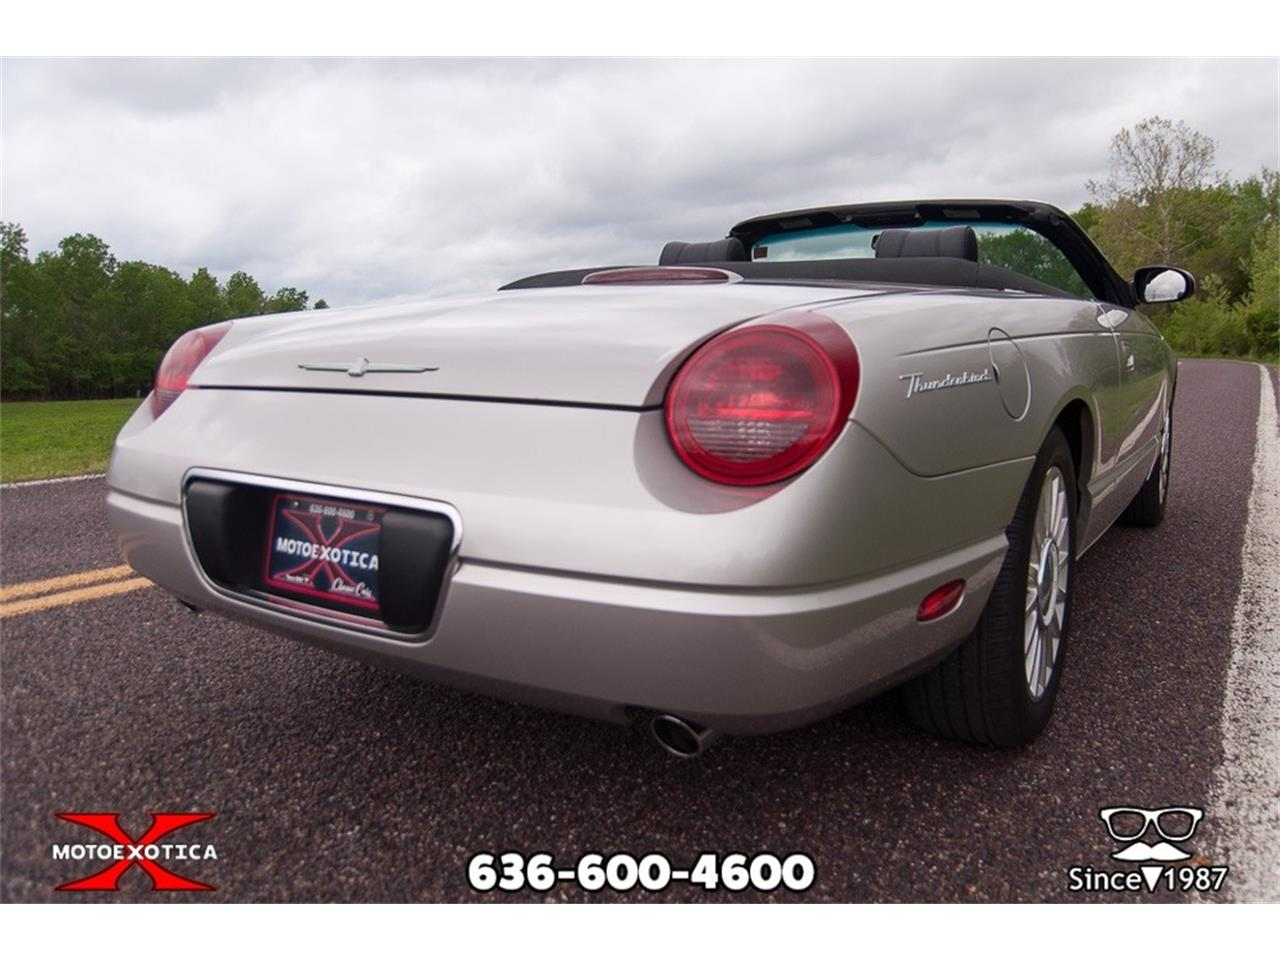 Large Picture of '05 Ford Thunderbird located in St. Louis Missouri - $26,900.00 - Q2FN